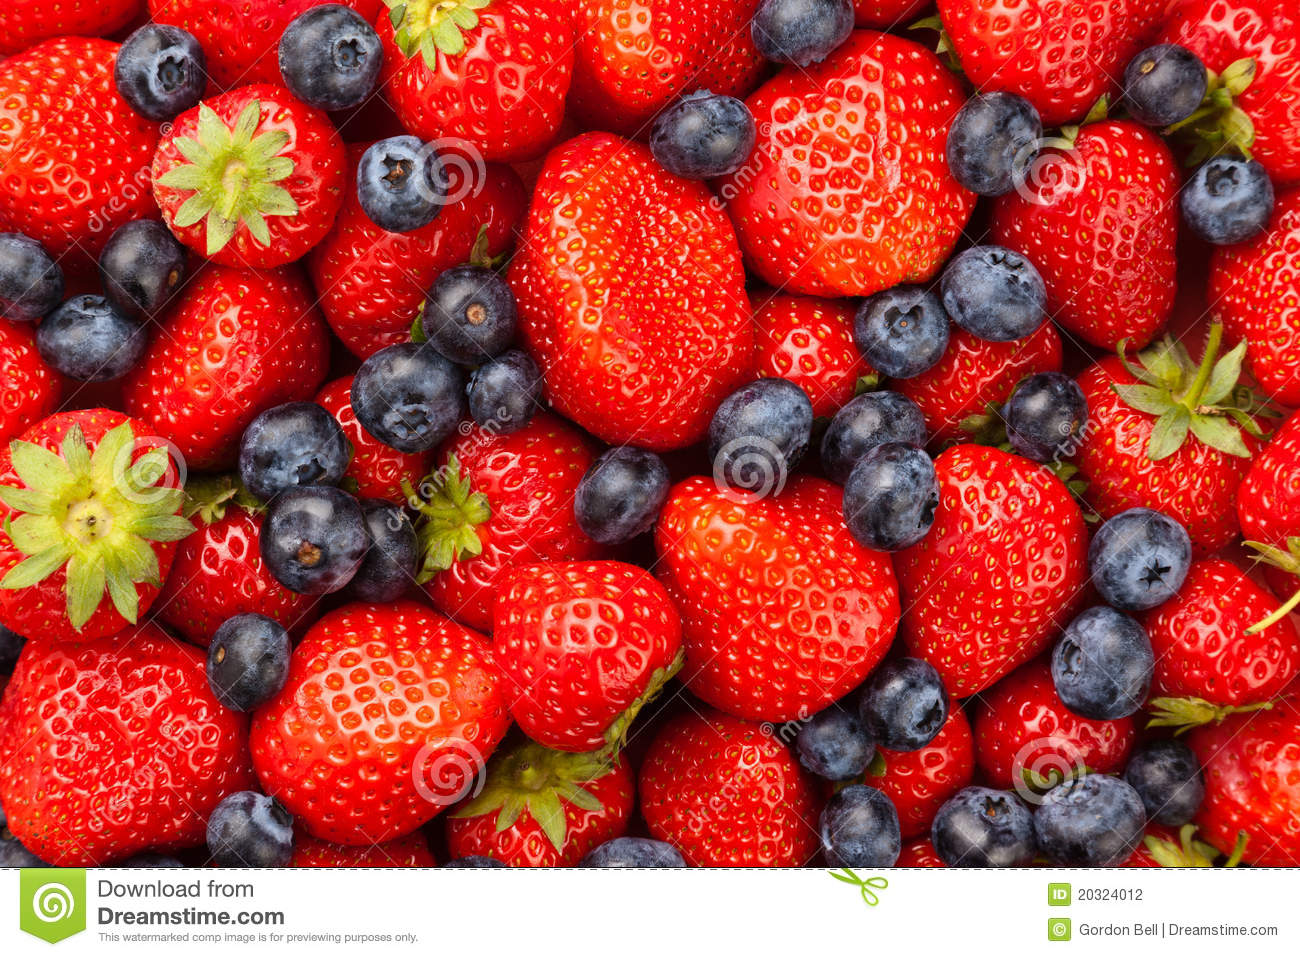 Strawberries And Blueberries Stock Photography - Image: 20324012